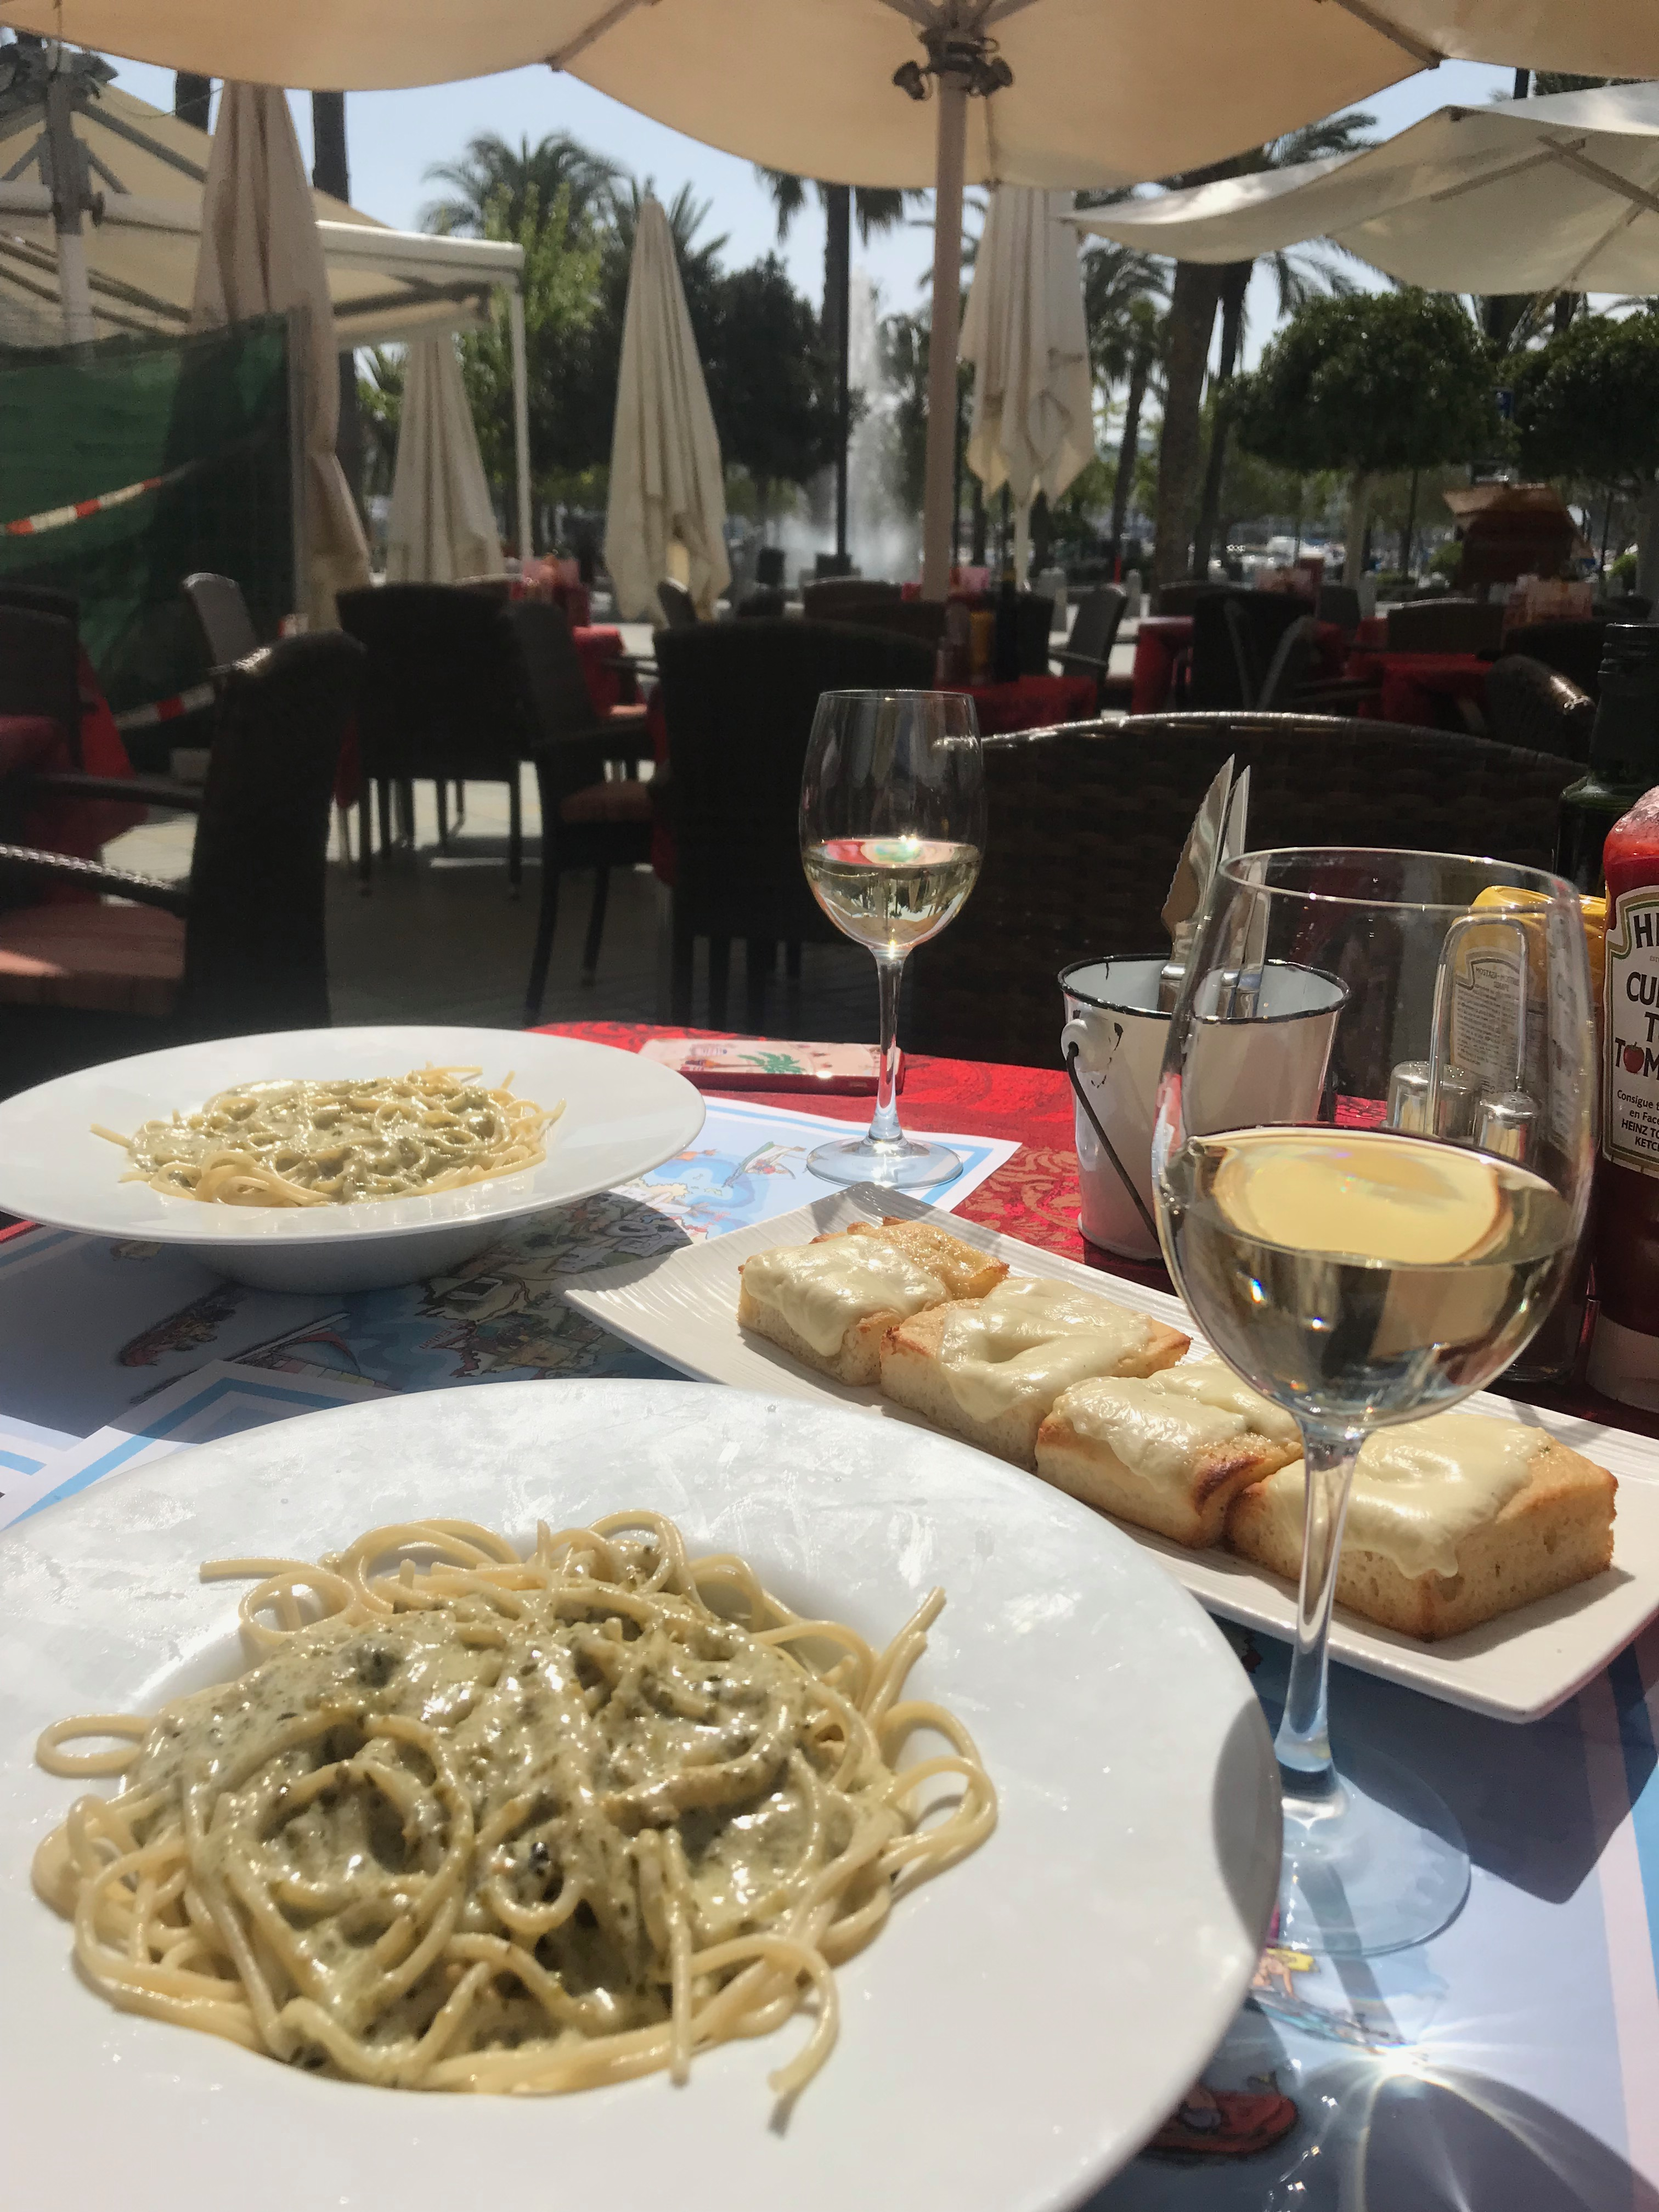 Pacha owned Leopard Rest Cafe @ The Port | Holiday & Wanderlust Inspo for the White Isle | Where's good to eat in San Antonio Ibiza | Travel tips & guide | Elle Blonde Luxury Lifestyle Destination Blog